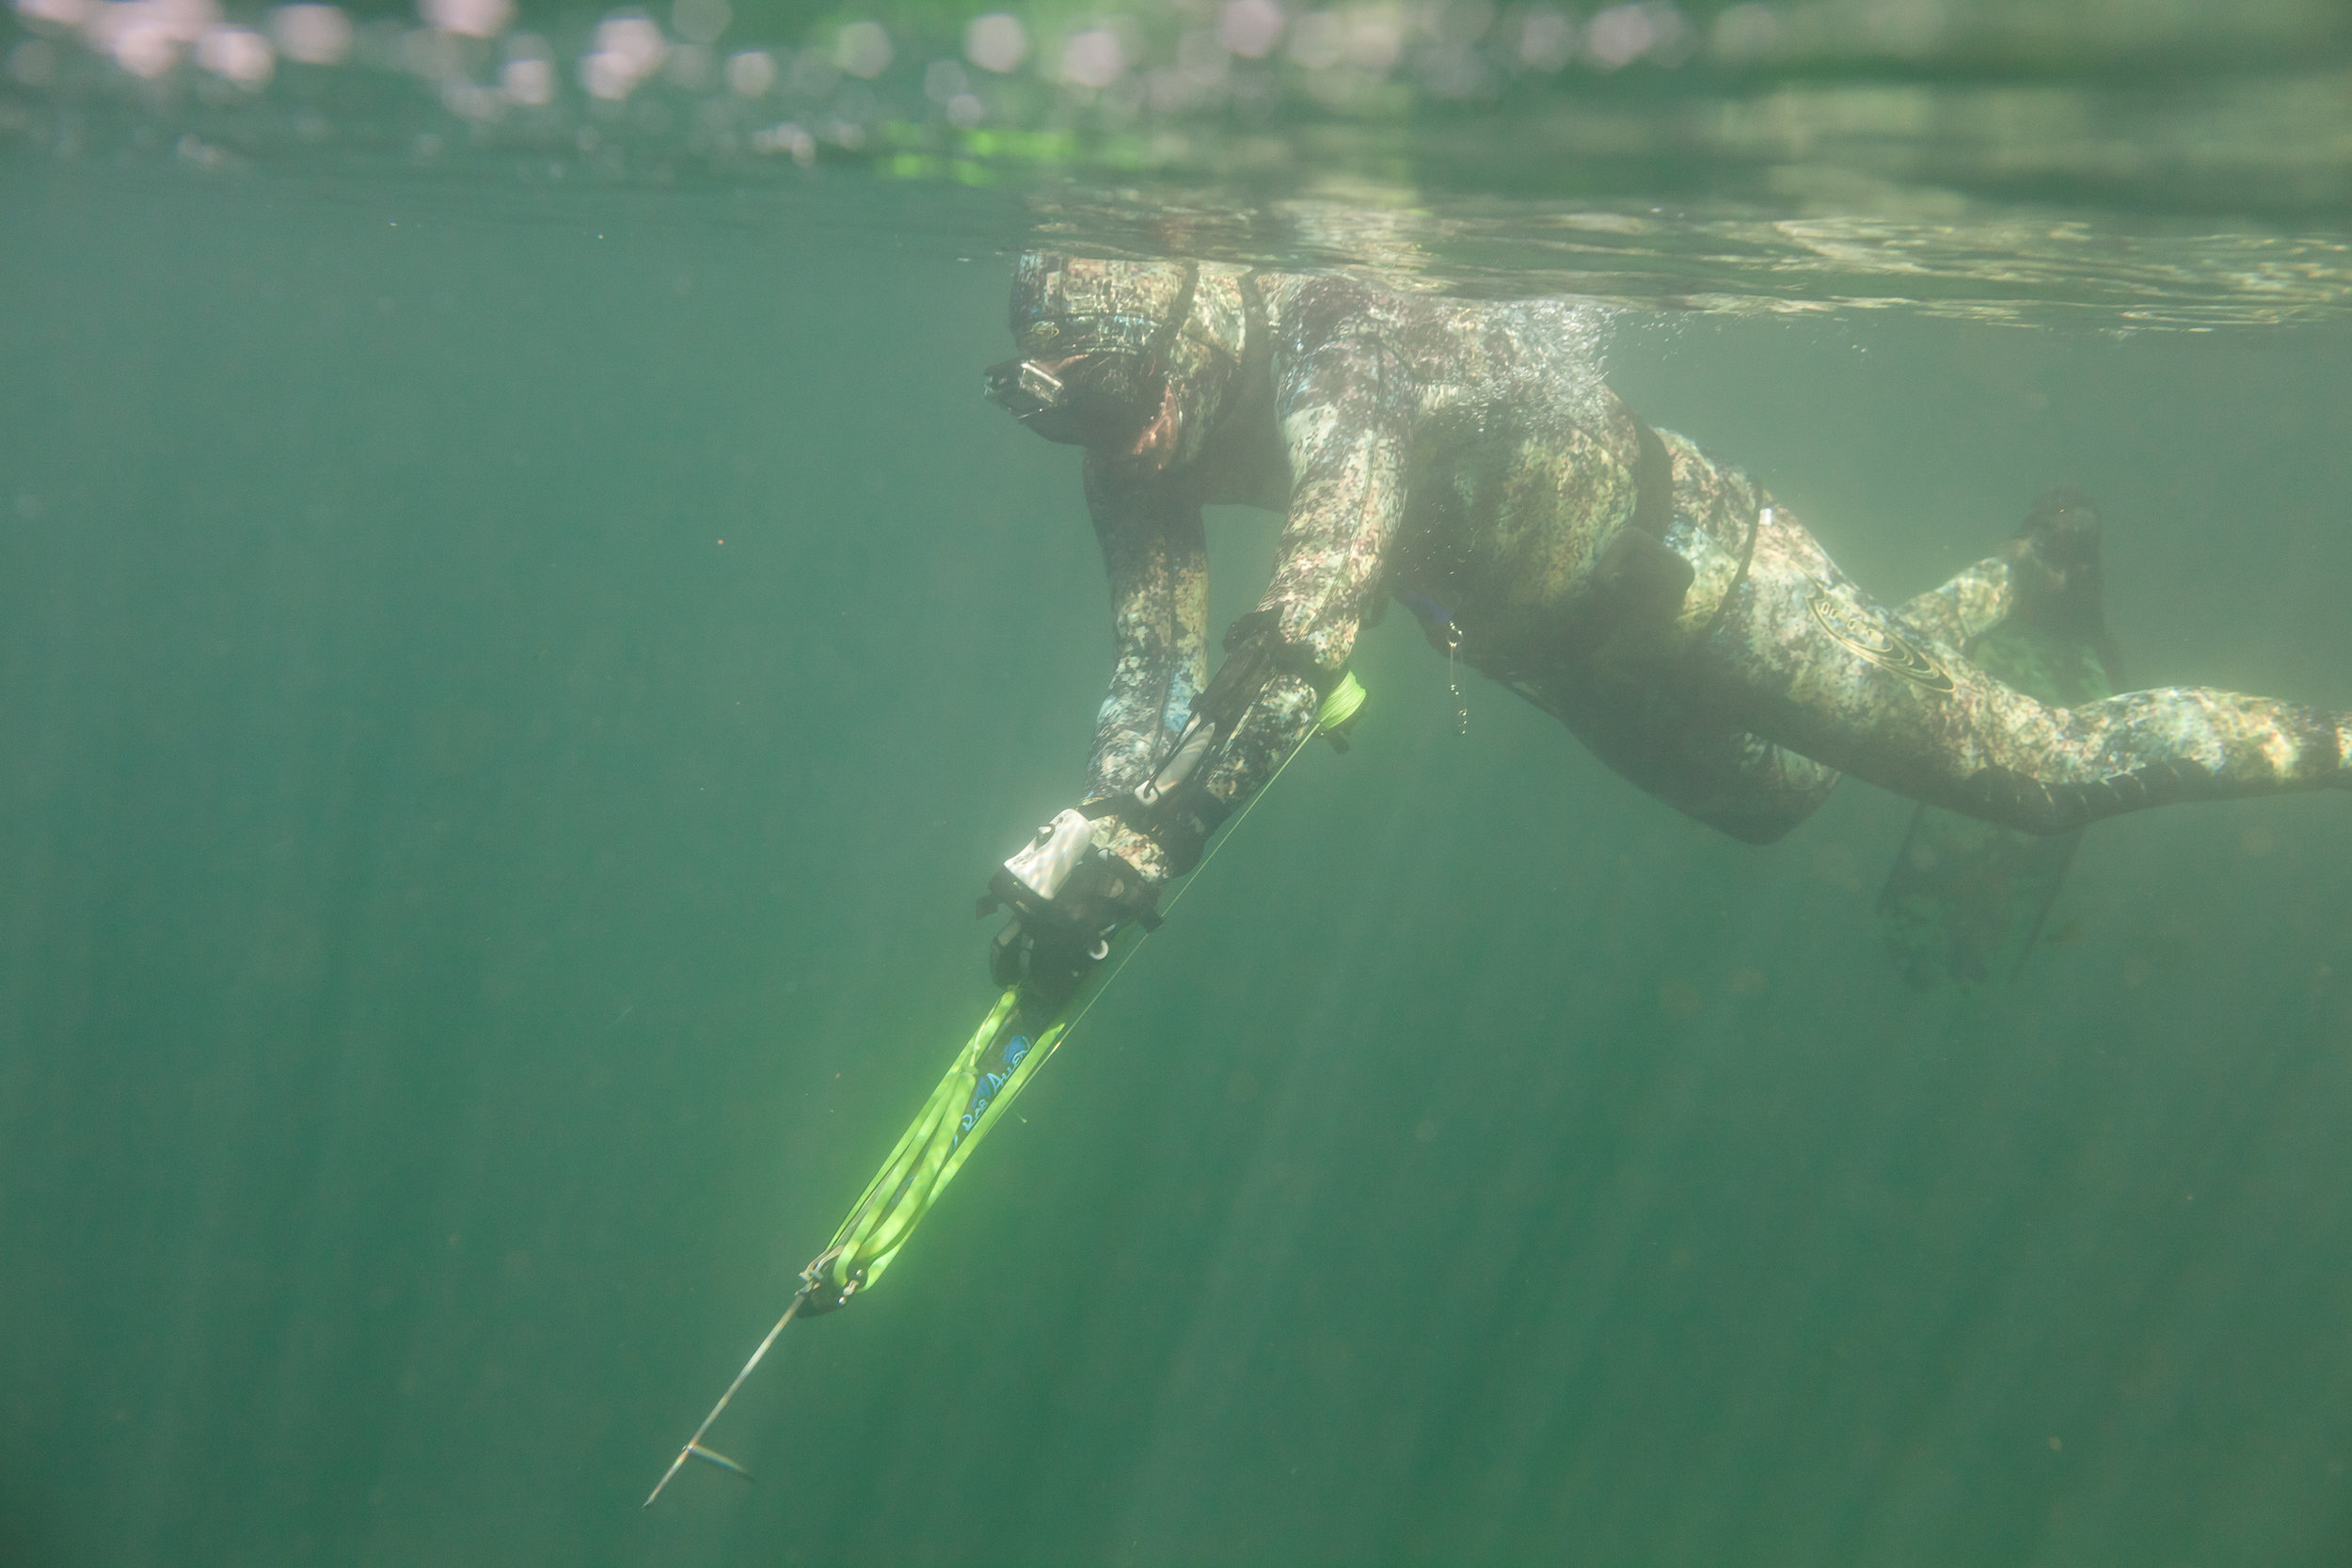 Loading a Speargun while out Harvesting reefs in the Gulf Islands. Photo: Dean Azim